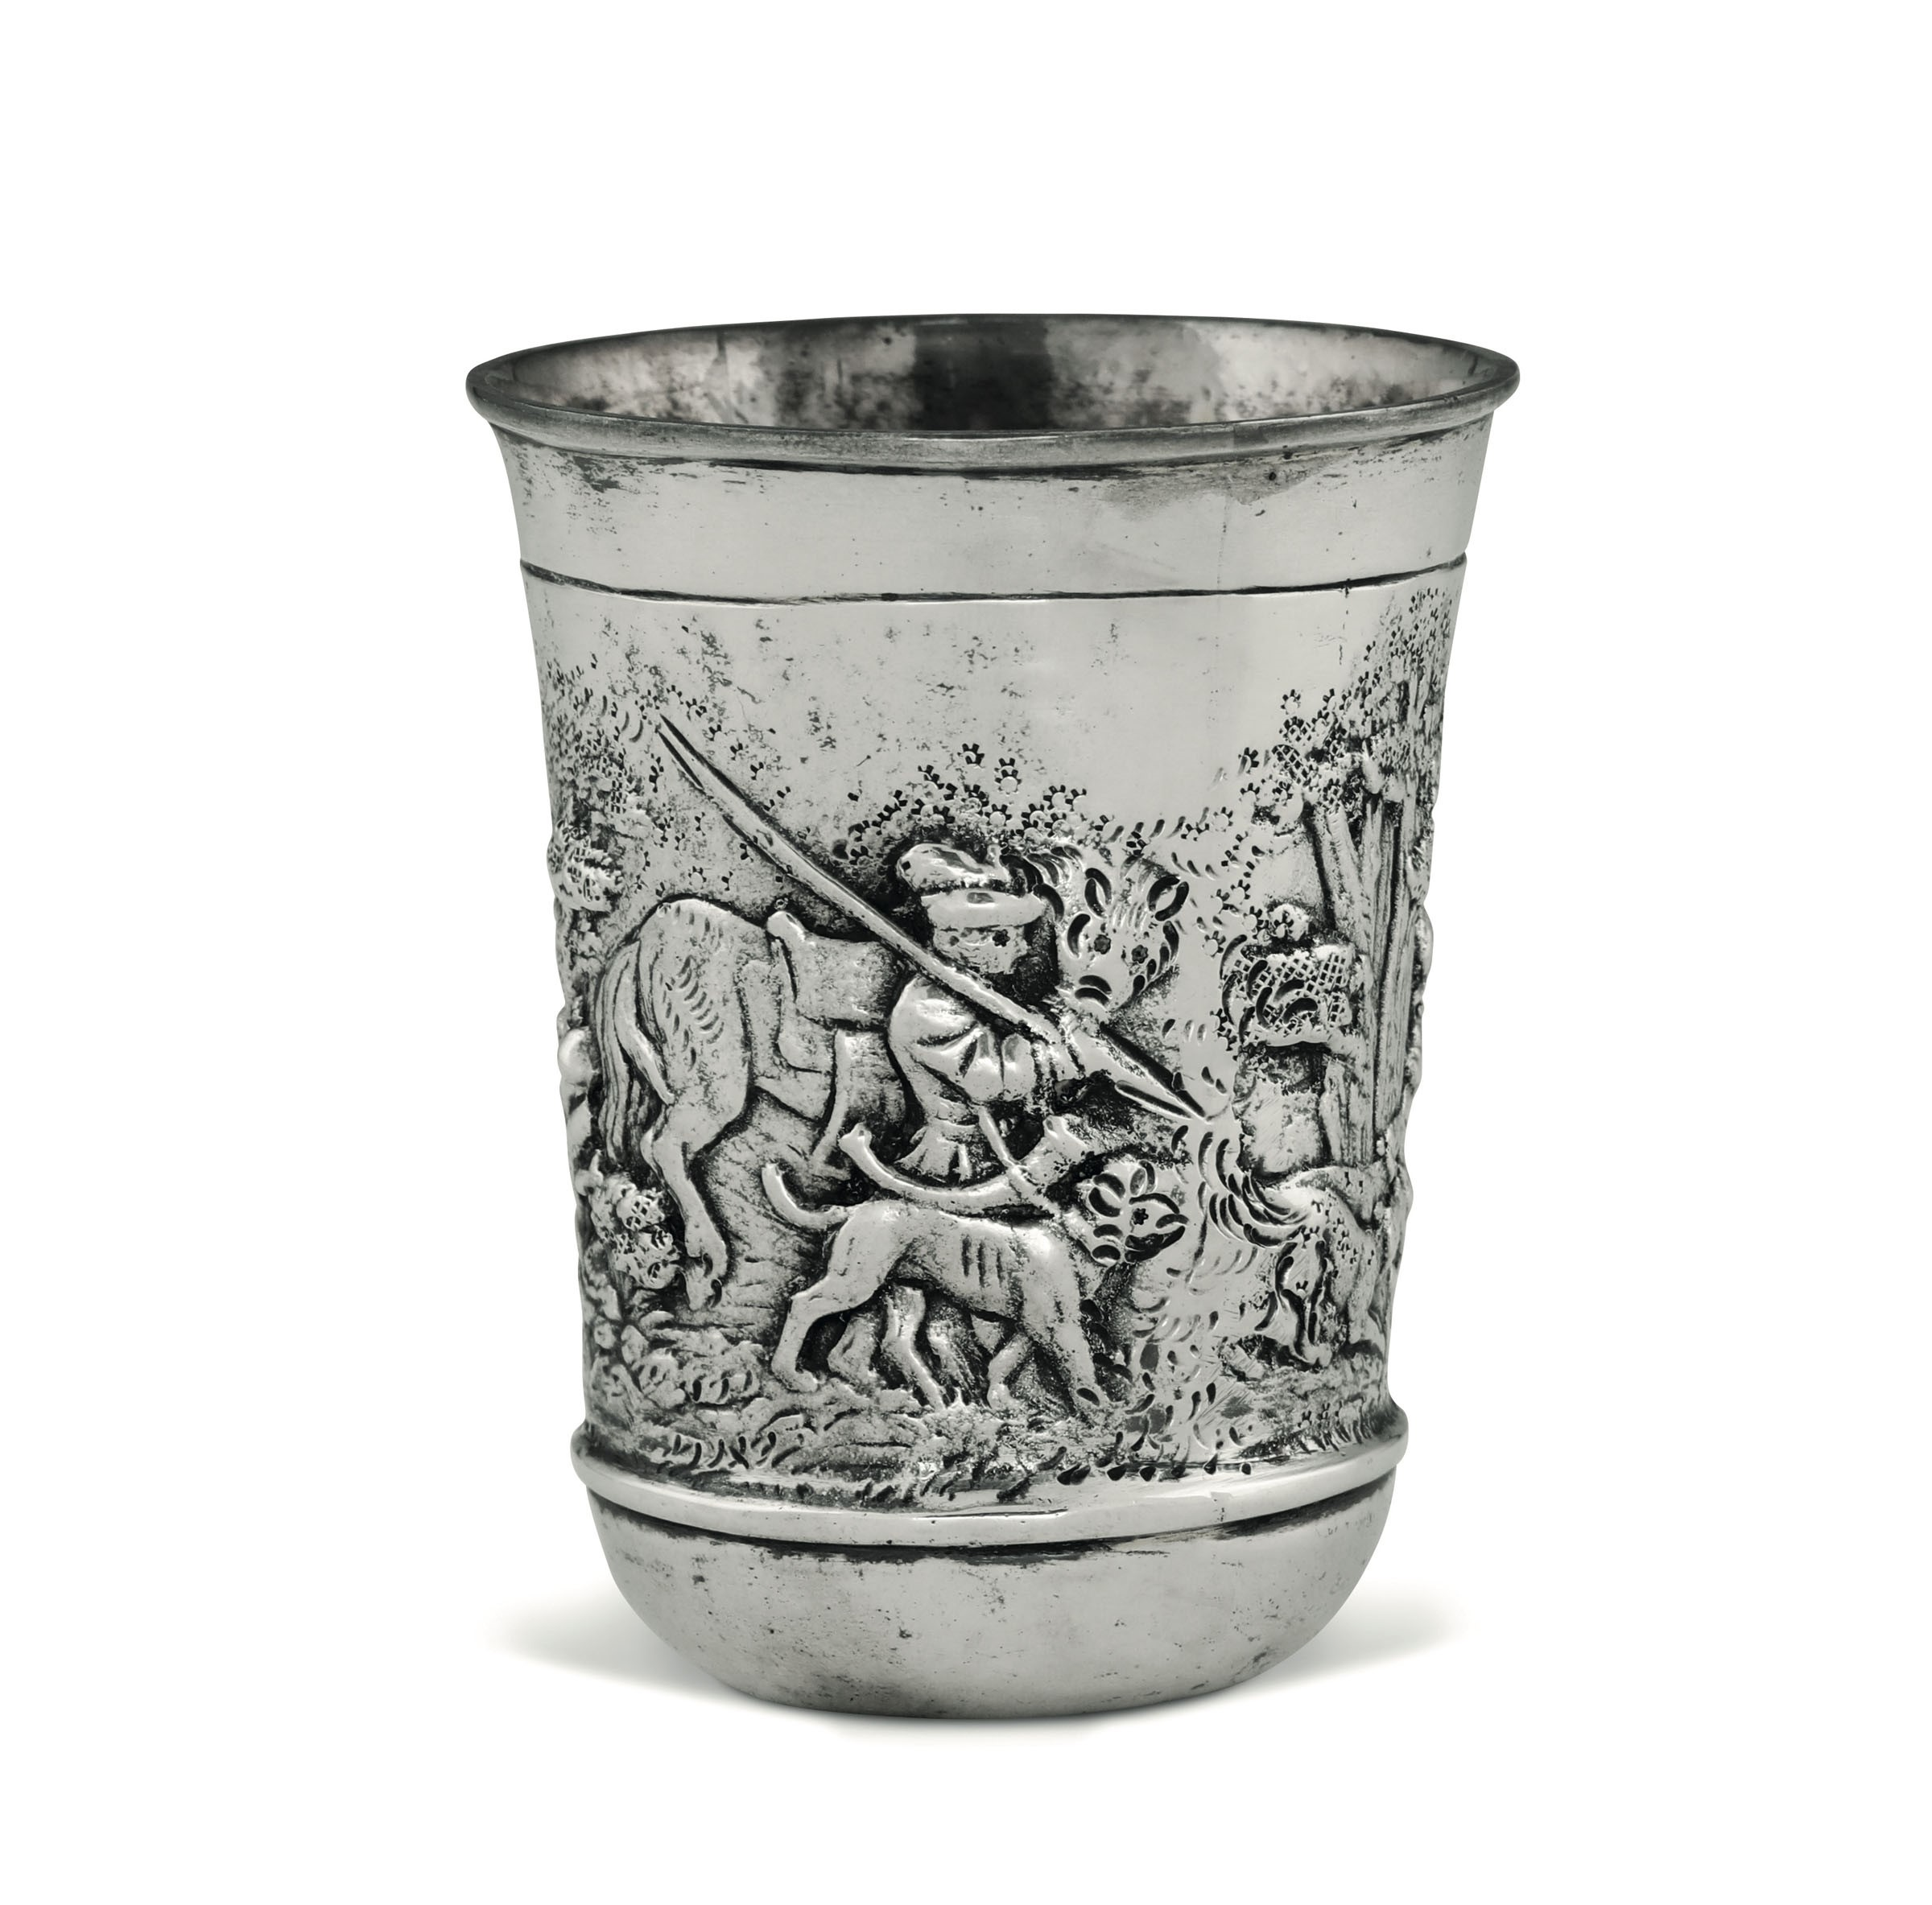 A silver hunter's cup, Germany, 1800s - Embossed and chiselled silver. 240gr, H 10cm, [...]